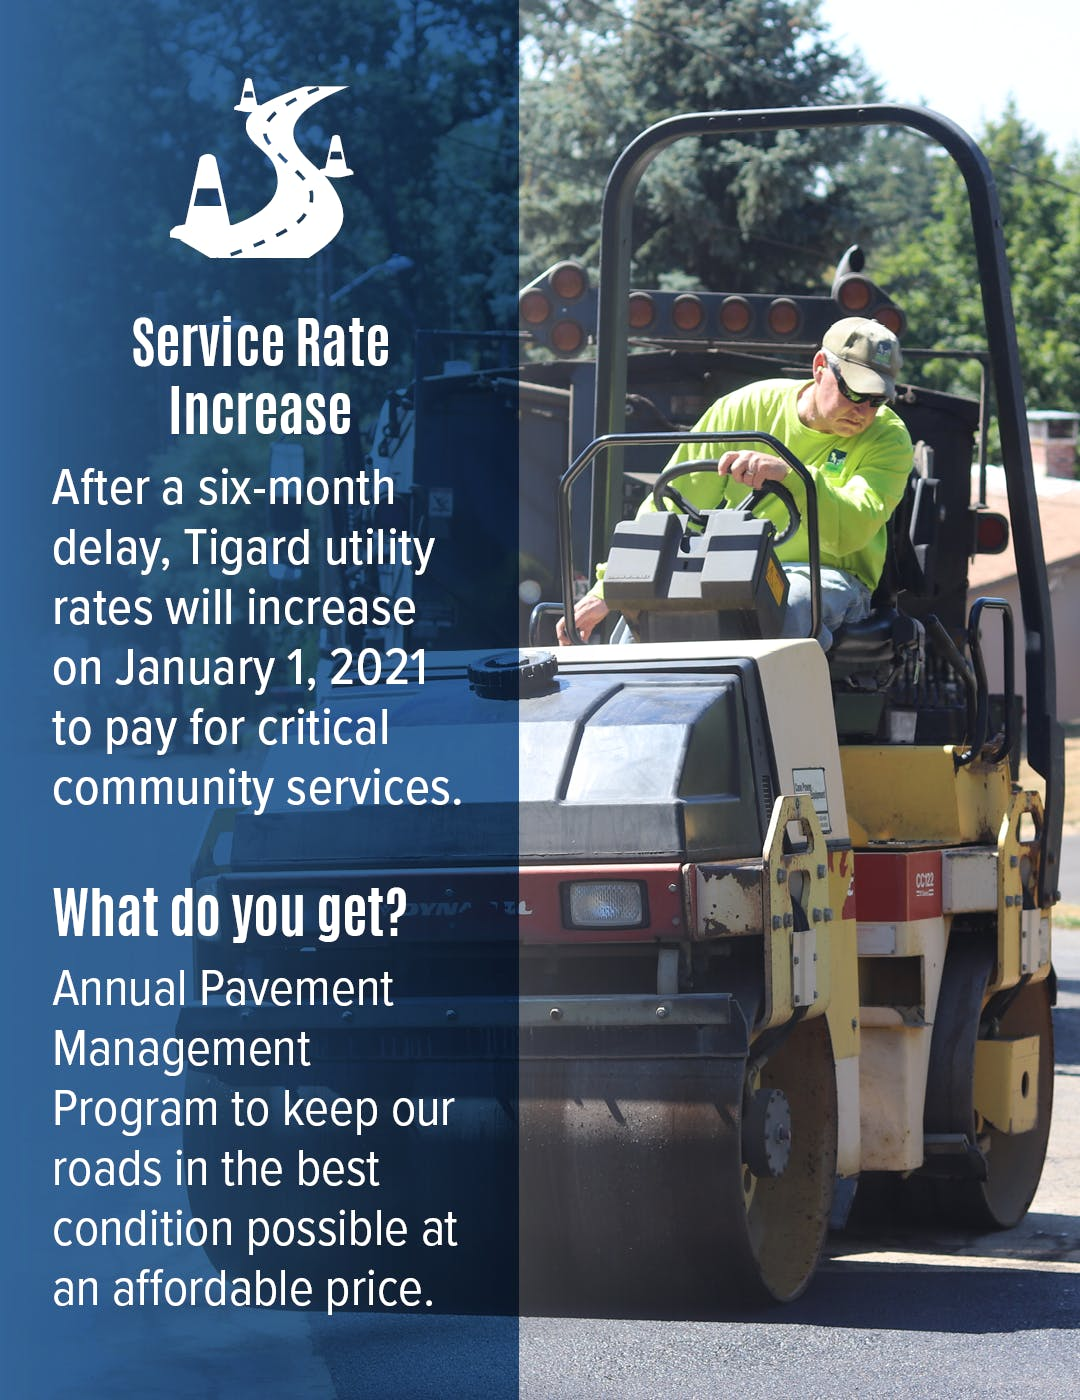 Street_Services_Rate_Increases_1080x1400.png